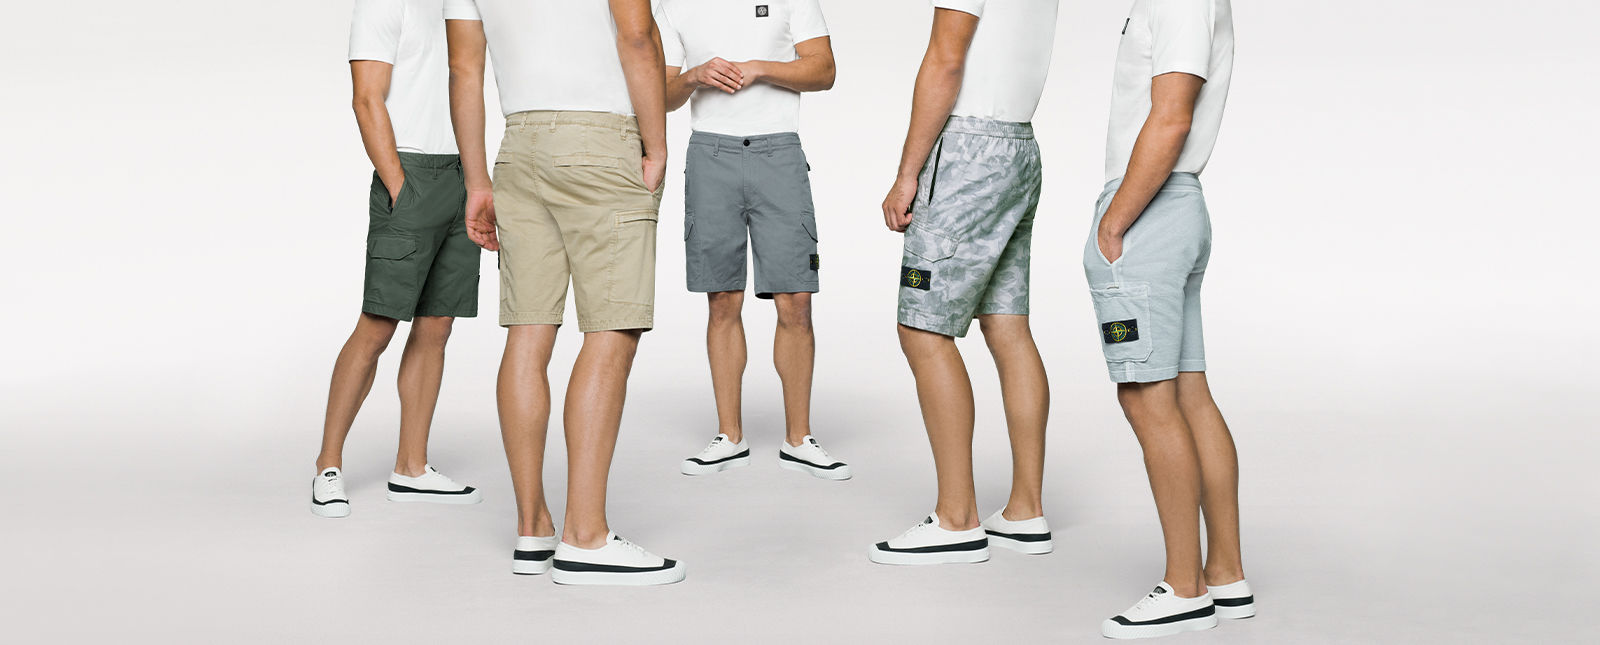 Five models standing in a semi circle and wearing Bermuda shorts with pockets in khaki, green, solid dark gray, patterned gray, and light gray.